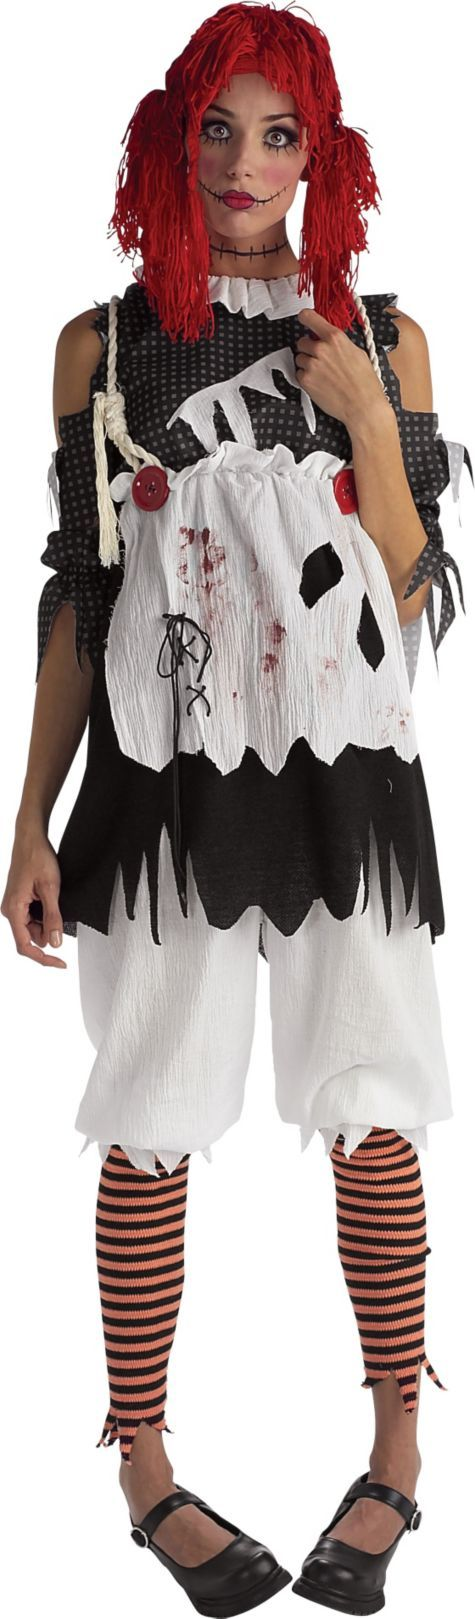 Scary Rag Doll Costume For Women   Party City